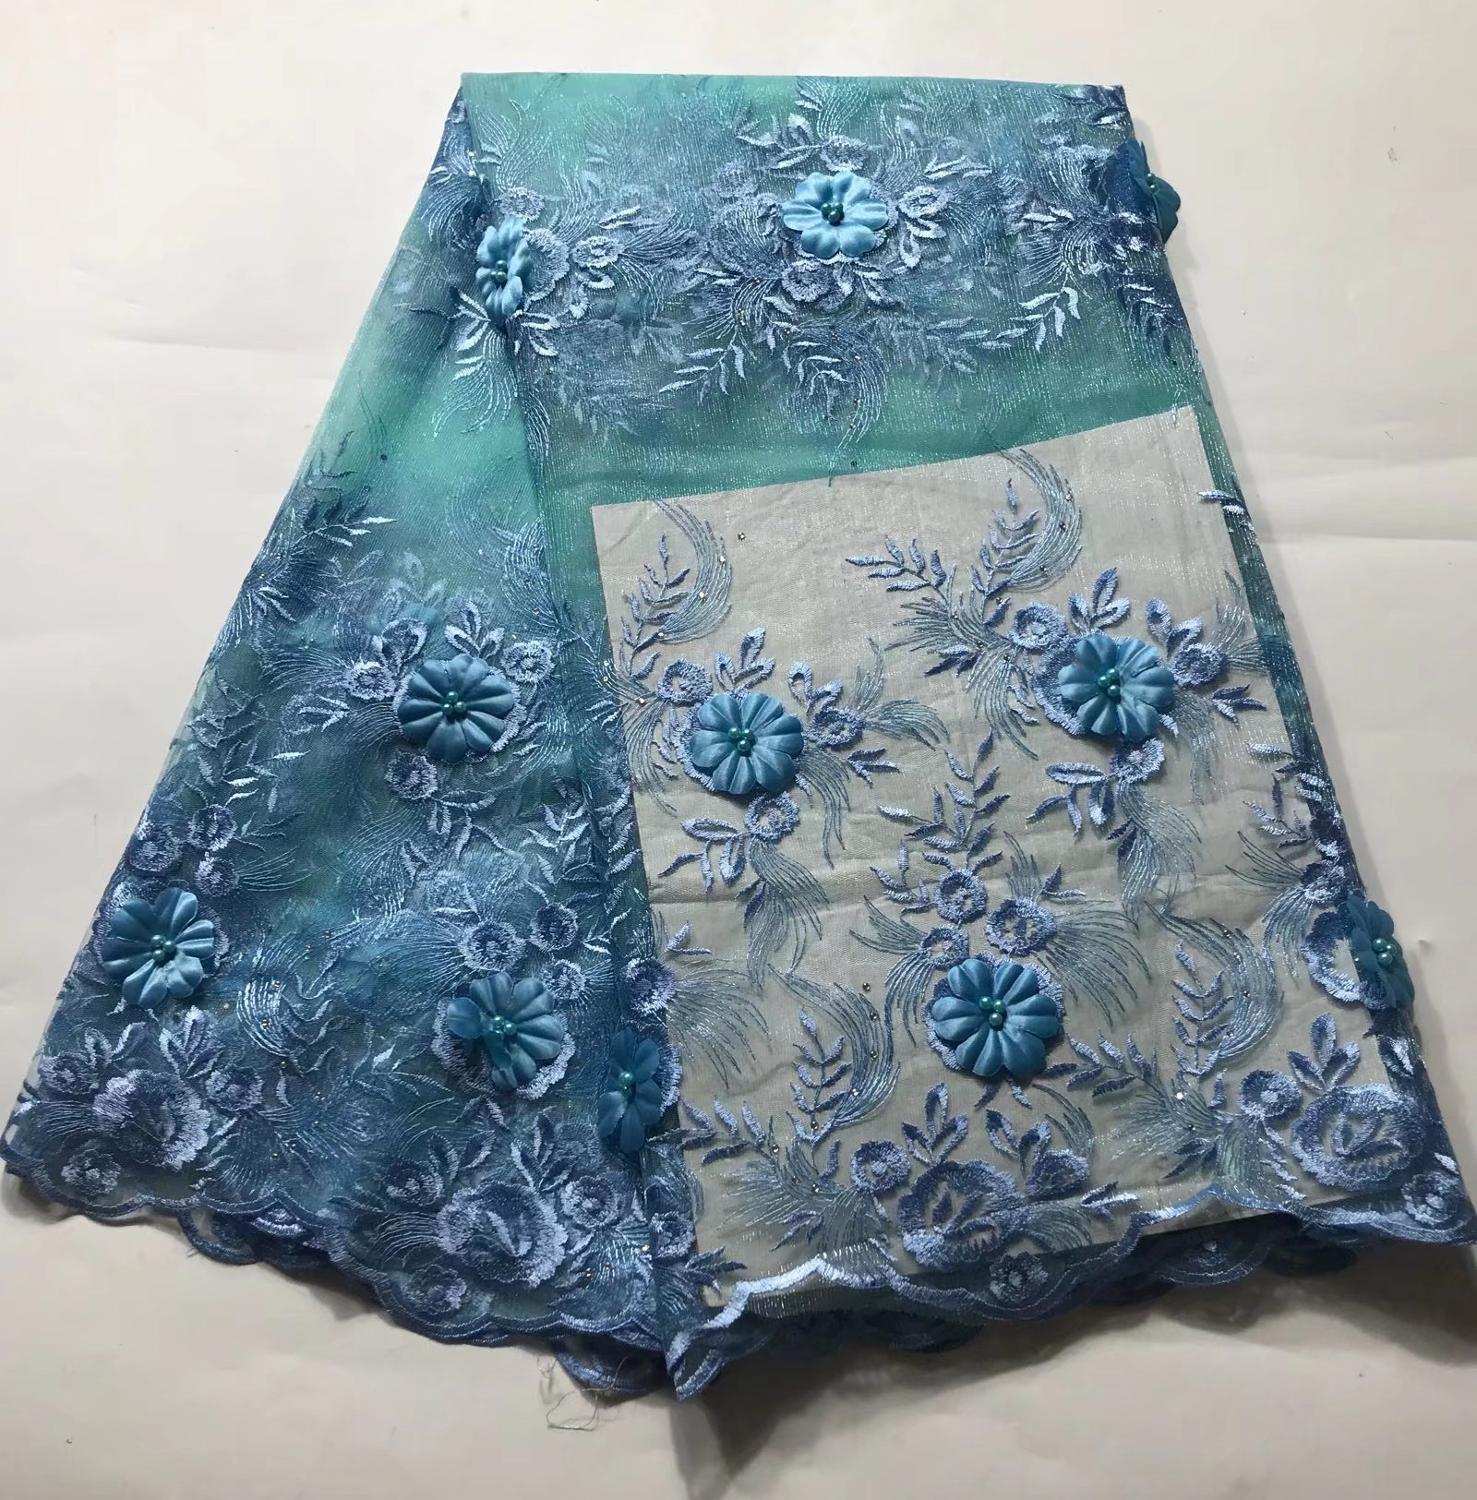 Blue+White Swiss Voile Lace In Switzerland High Quality French Design Tulle Lace Fabric 2018 African Swiss Voile Lace Wine redBlue+White Swiss Voile Lace In Switzerland High Quality French Design Tulle Lace Fabric 2018 African Swiss Voile Lace Wine red